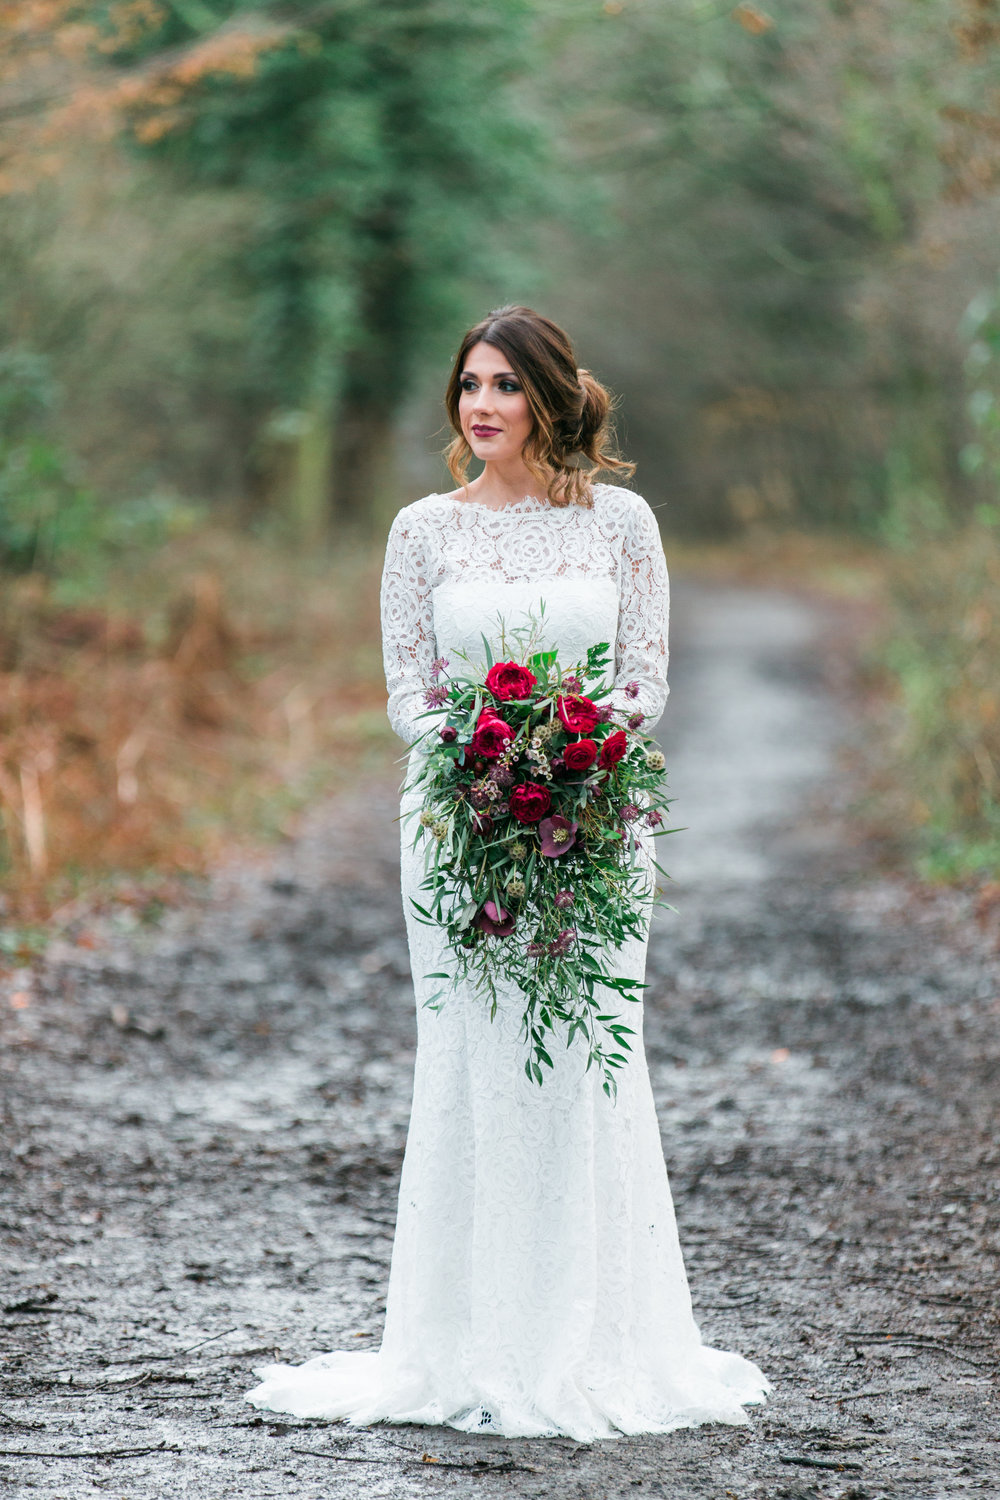 Petal and Wild Romantic Winter Wedding 02.jpg